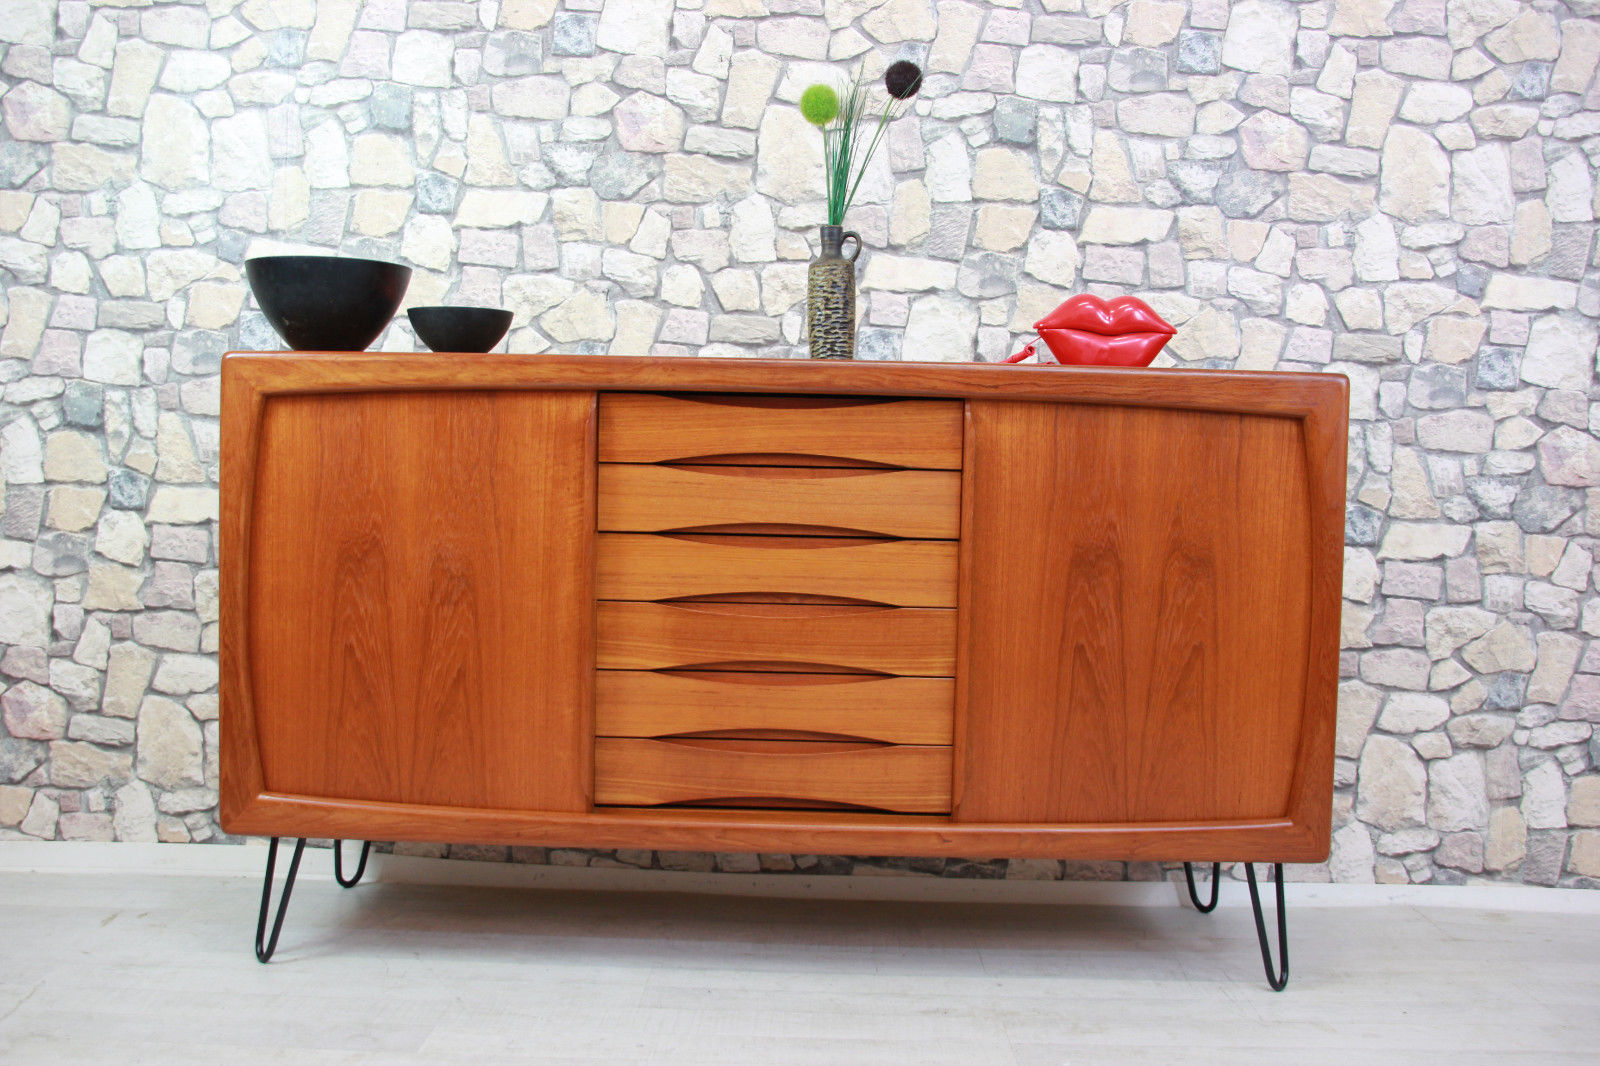 60Er Teak Dyrlund Kommode Sideboard Danish Design 60S 60S Throughout Mid Century Modern Scandinavian Style Buffets (Photo 20 of 30)